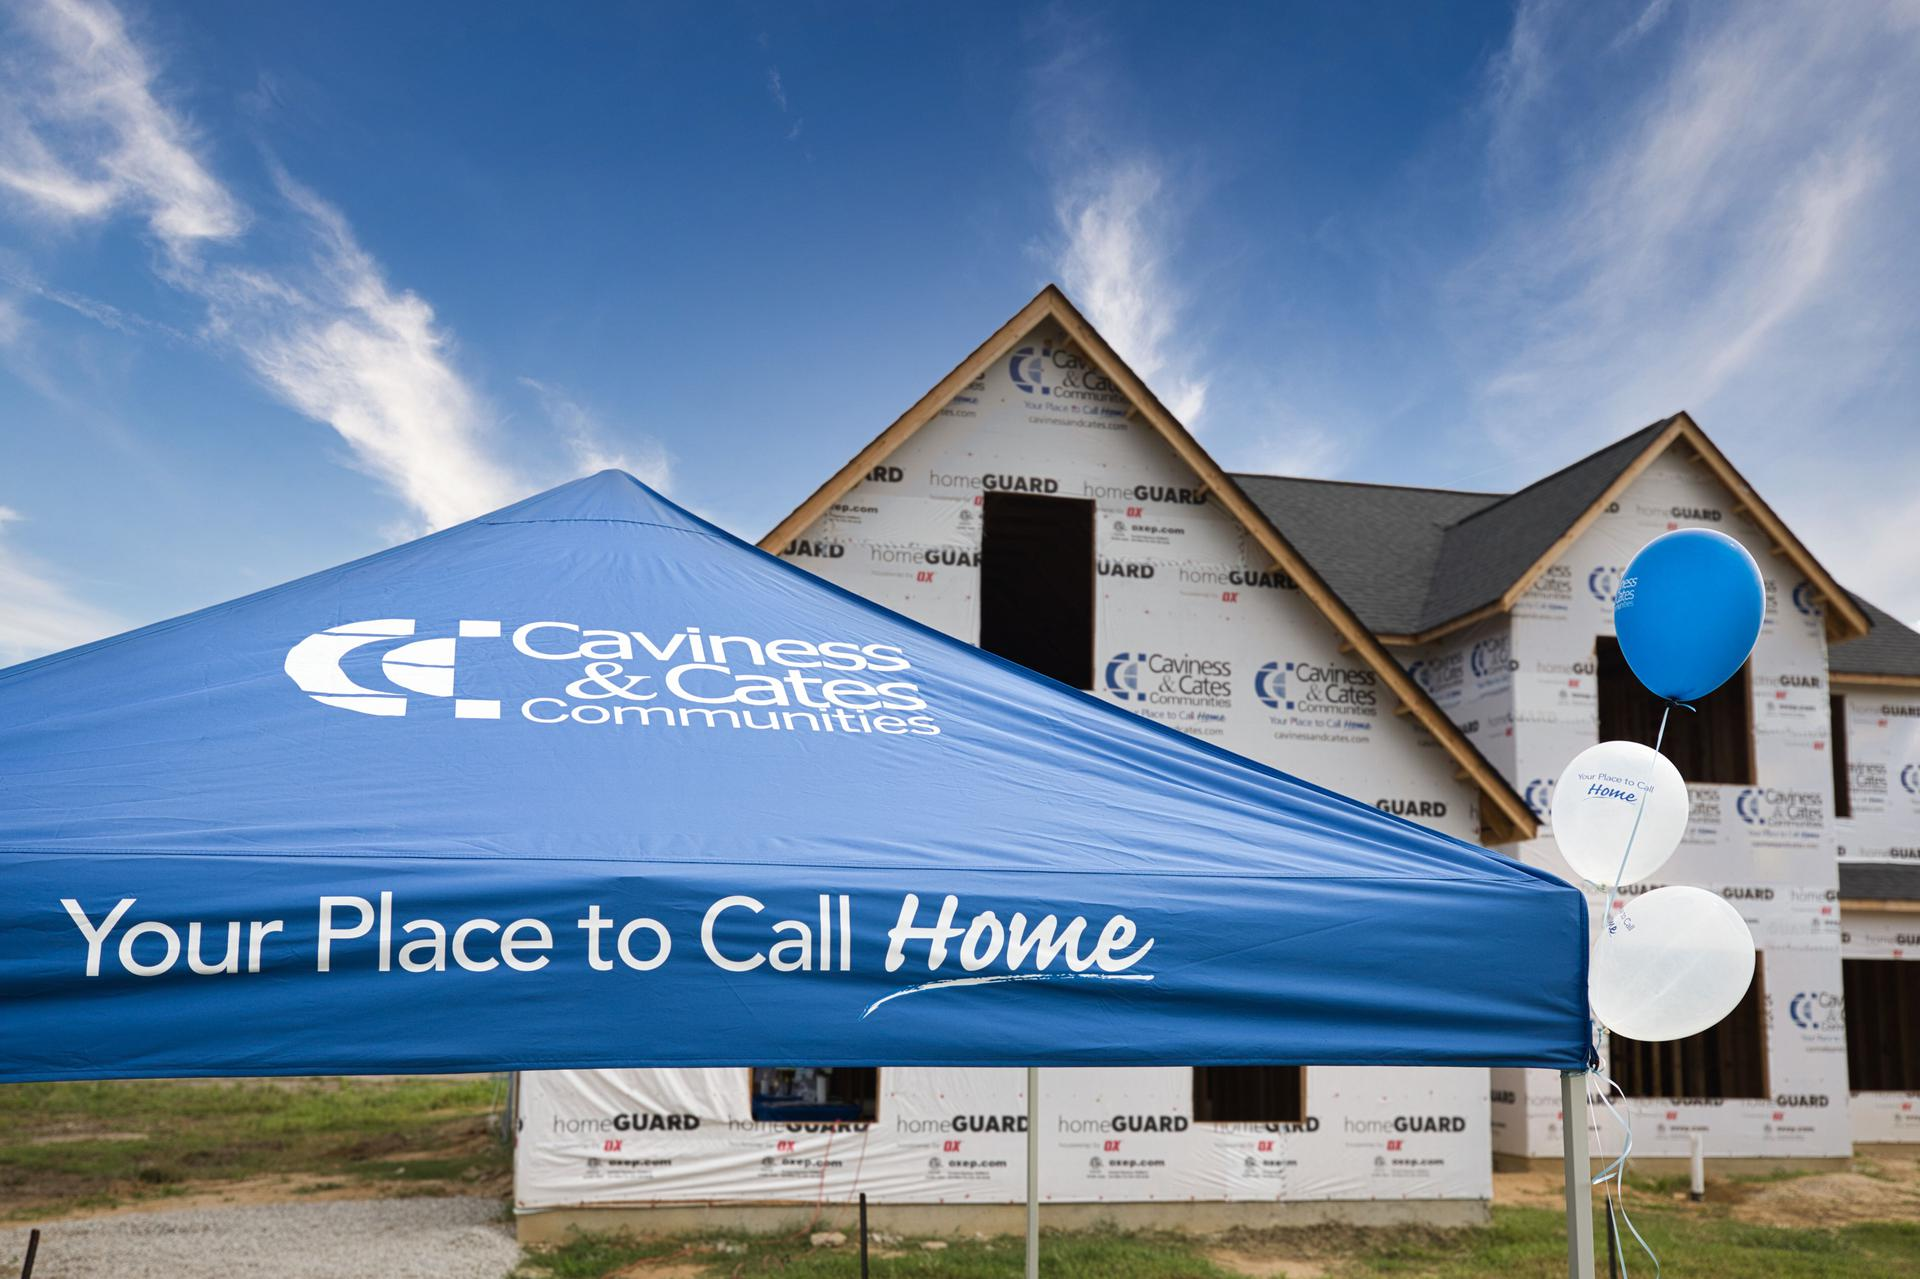 Caviness & Cates Community Grand Releases in Hope Mills, NC